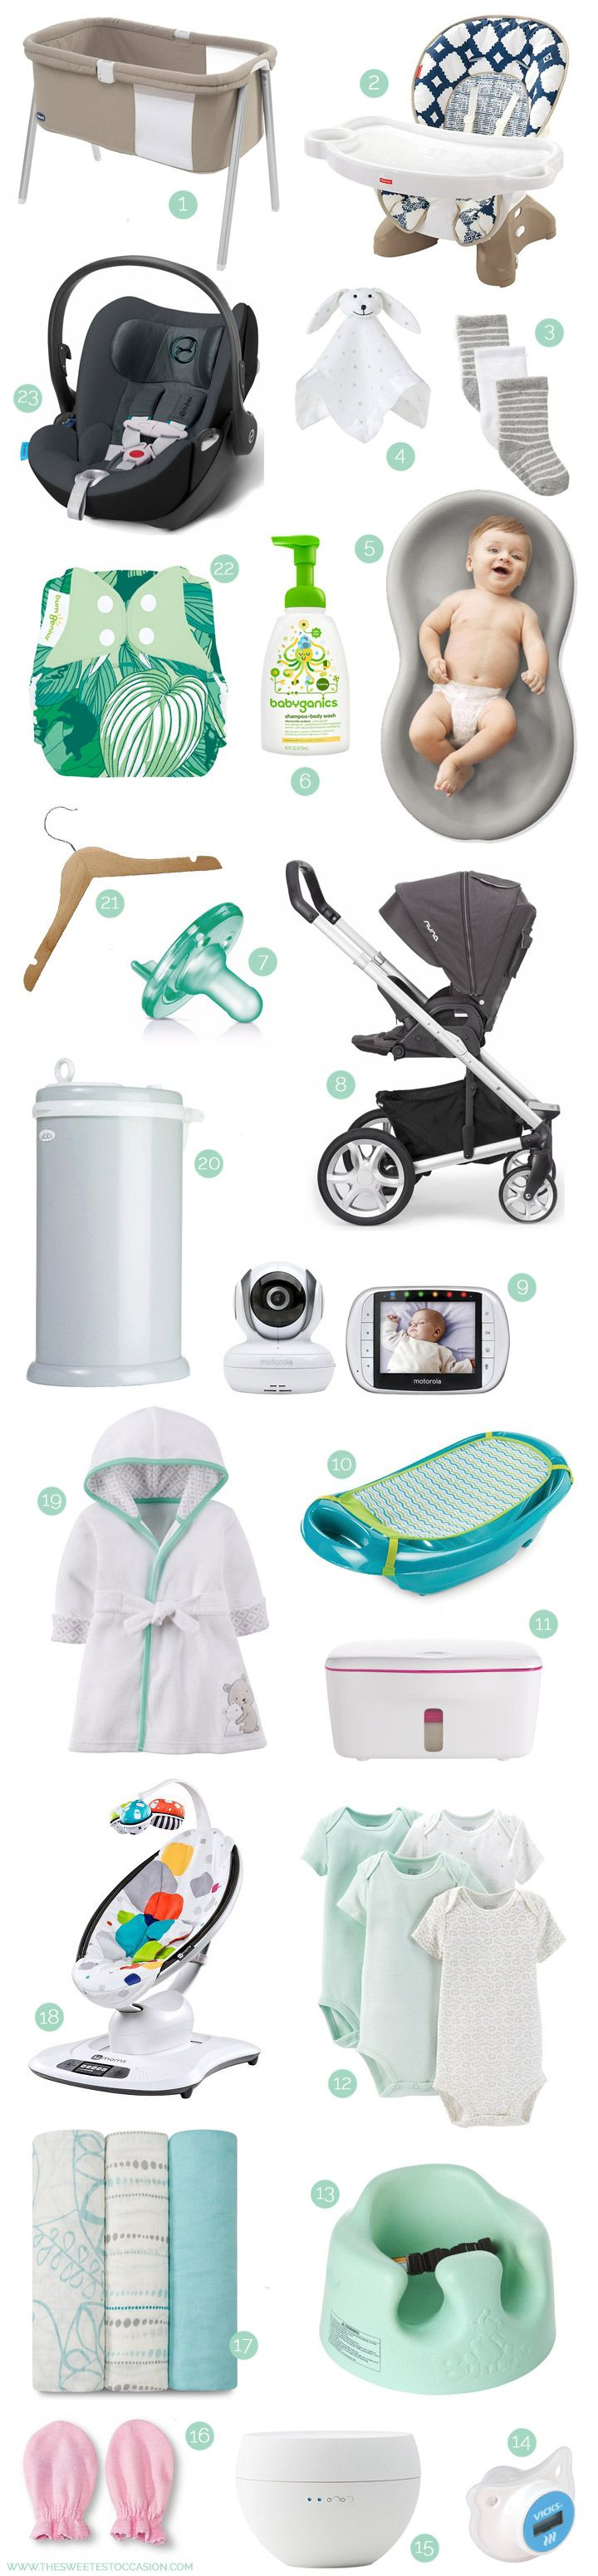 Updates at 30 weeks pregnant and Cyd's picks for baby registry essentials - see them all at The Sweetest Occasion!